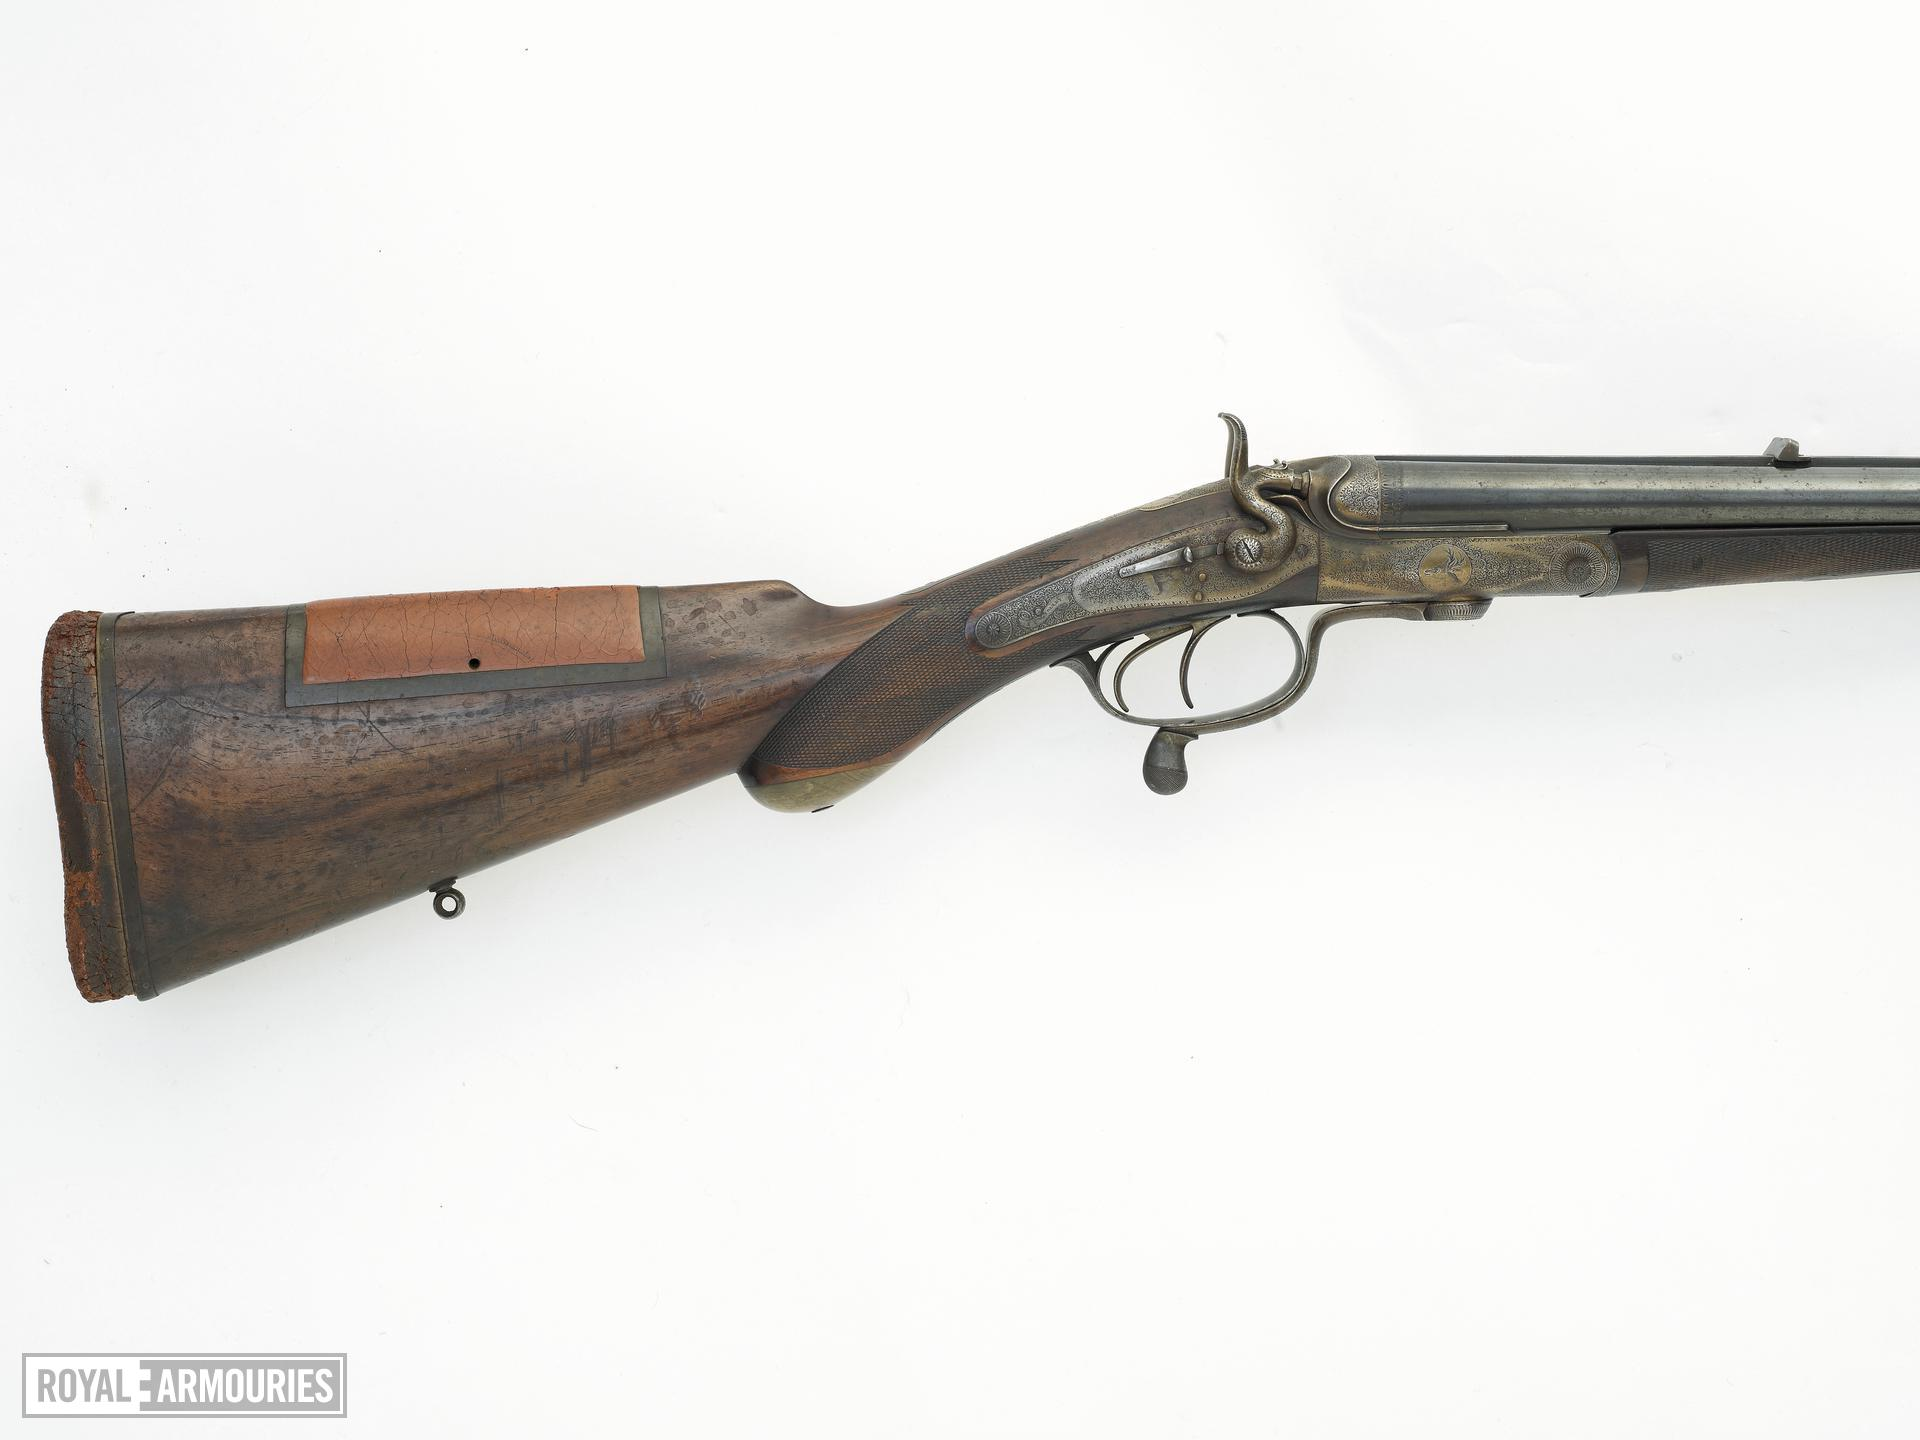 Centrefire breech-loading double-barrelled rifle - By J. and W. Tolley